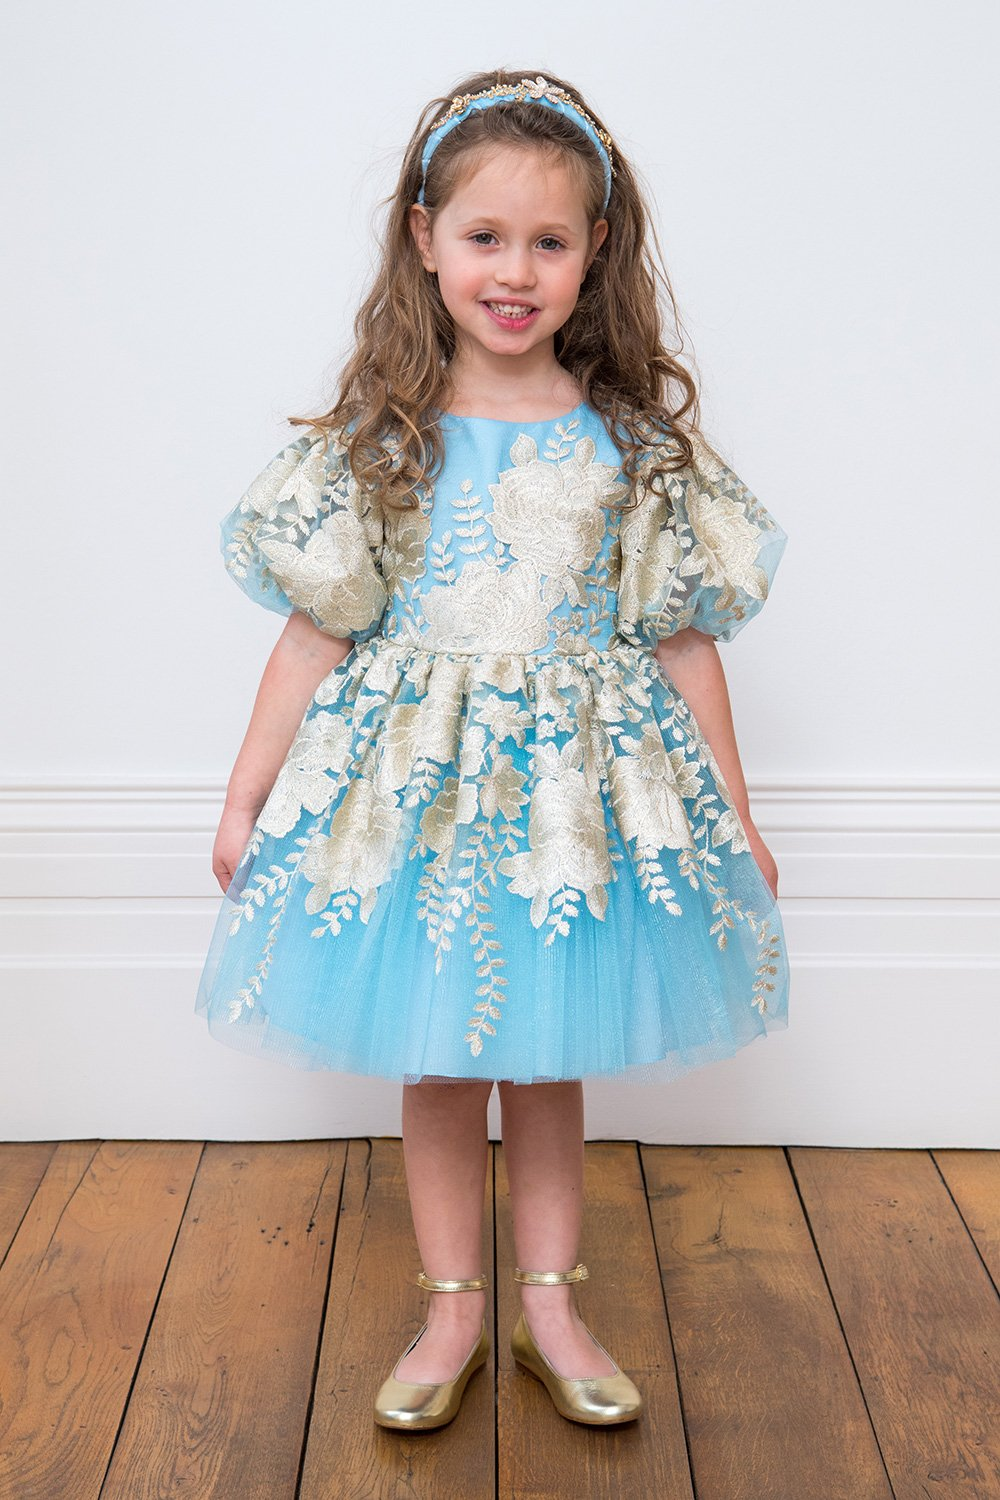 ac9c8a69b89b Pastel Blue and Gold Floral Dress - David Charles Childrens Wear